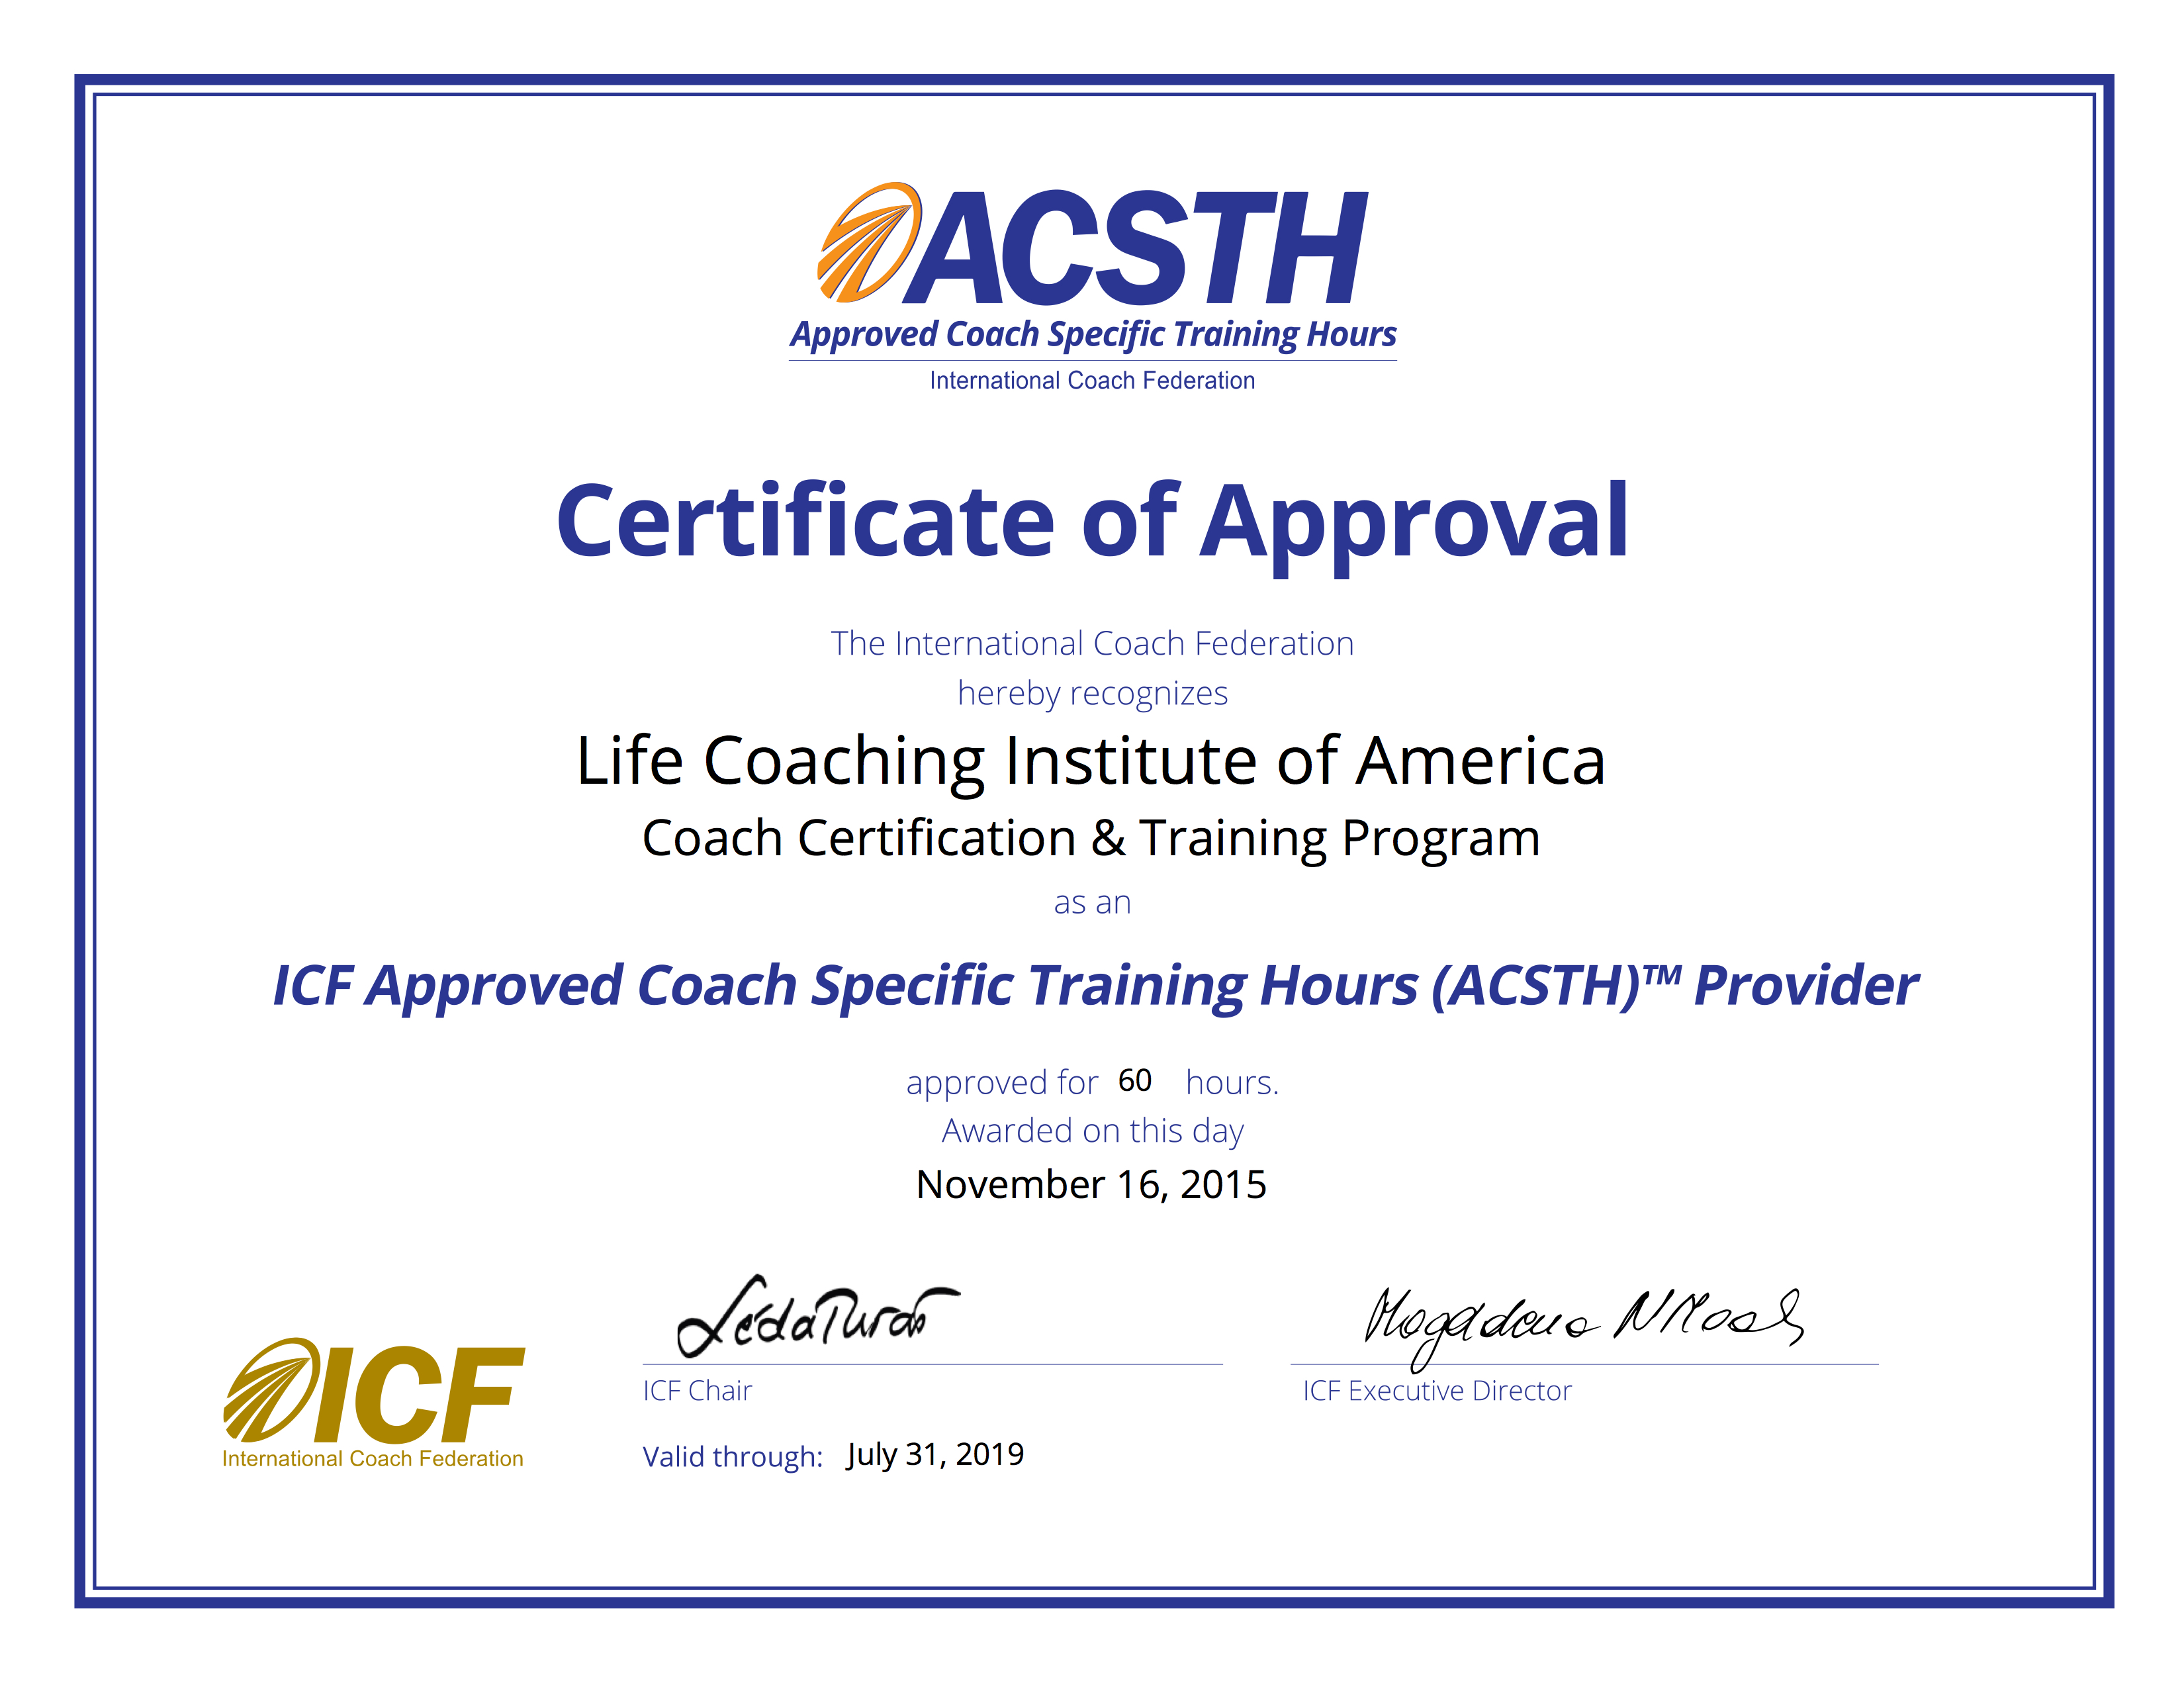 Life coach certification training life coaching institute of complete your international coach federation icf approved coach specific training hours in our one stop comprehensive program xflitez Images